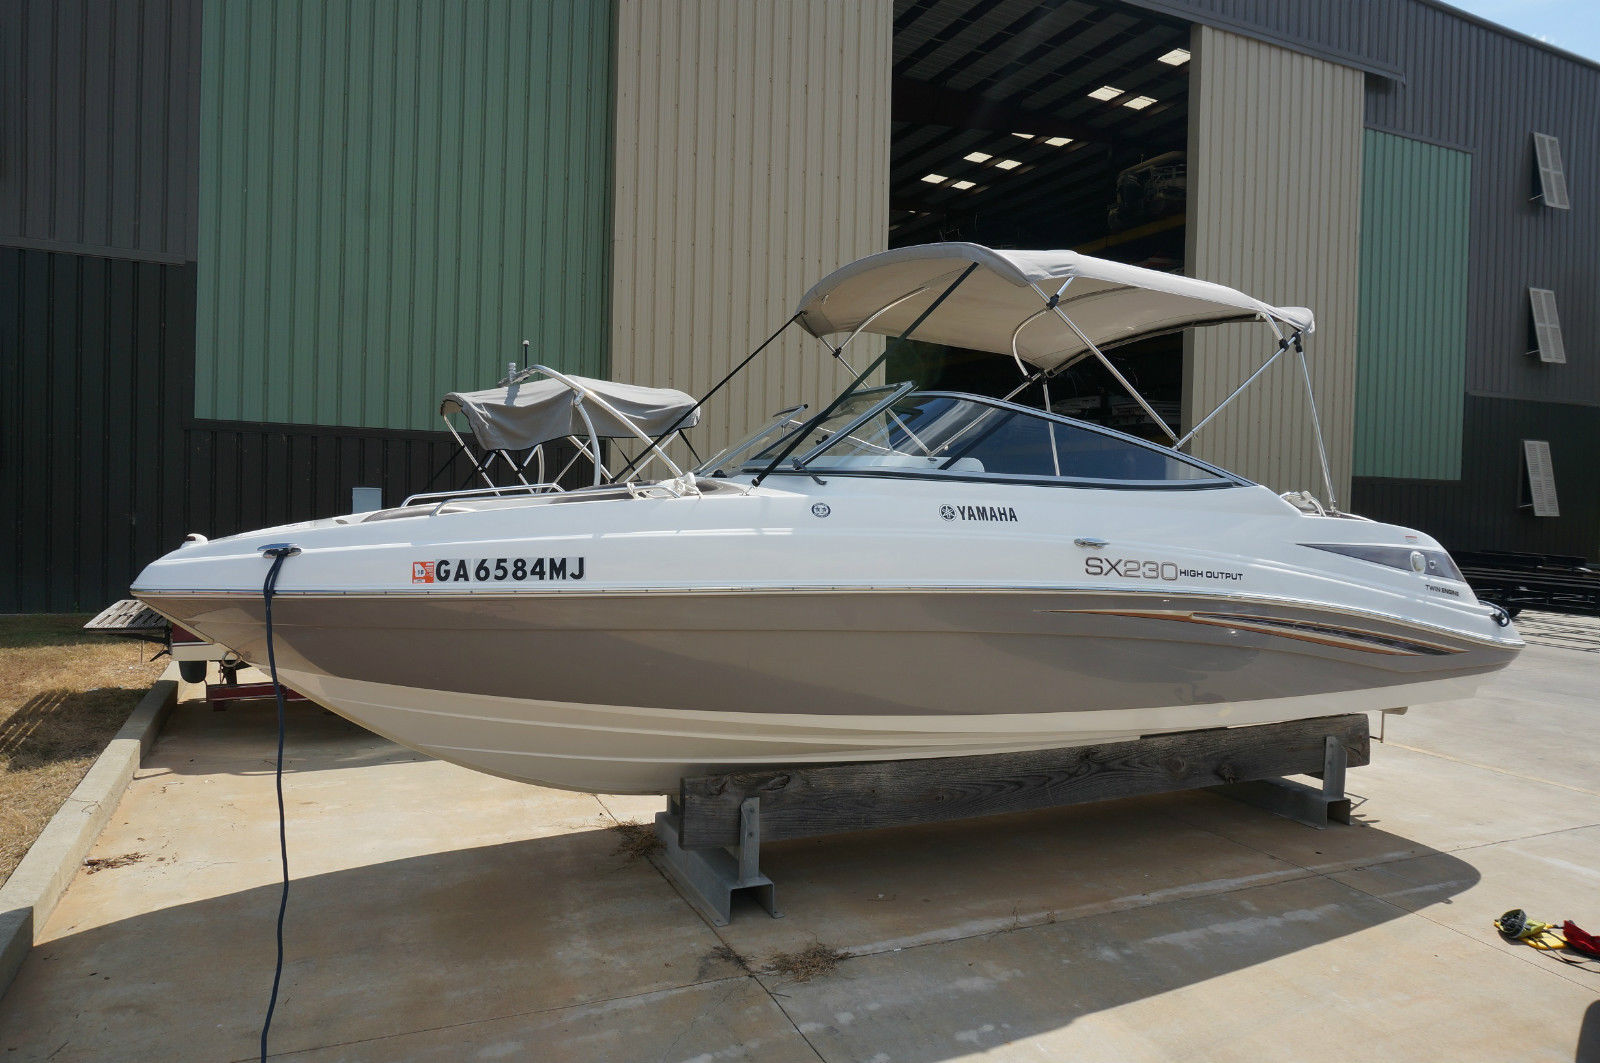 Yamaha SX230 2007 for sale for $22,500 - Boats-from-USA.com